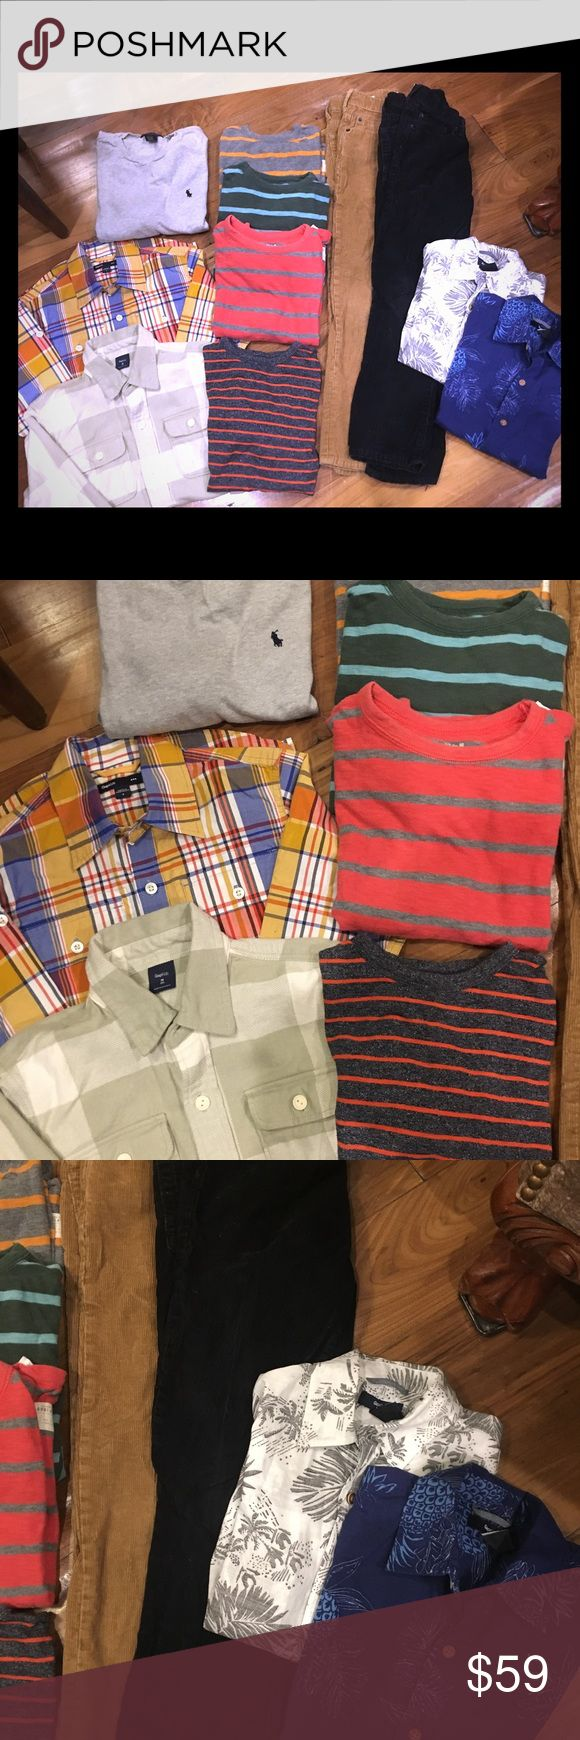 GAP Boys Clothes Lot AWESOME DEAL! Size 8 Boys almost all Gap Clothes.  Great condition! Get everything you need. All size 8.  Includes: black Gap 1969 Corduroys Tan Gap 1969 Corduroys 3 striped long sleeved cotton Gap shirts (green one has a tiny pinhole just above the wrist barely visible)  1 navy/orange Gap short sleeve shirt 1 gray Polo long sleeve shirt Long sleeve Gap button down  Long sleeve flannel Gap button down 2 short sleeved Gap Hawaiian print shirts GAP Other